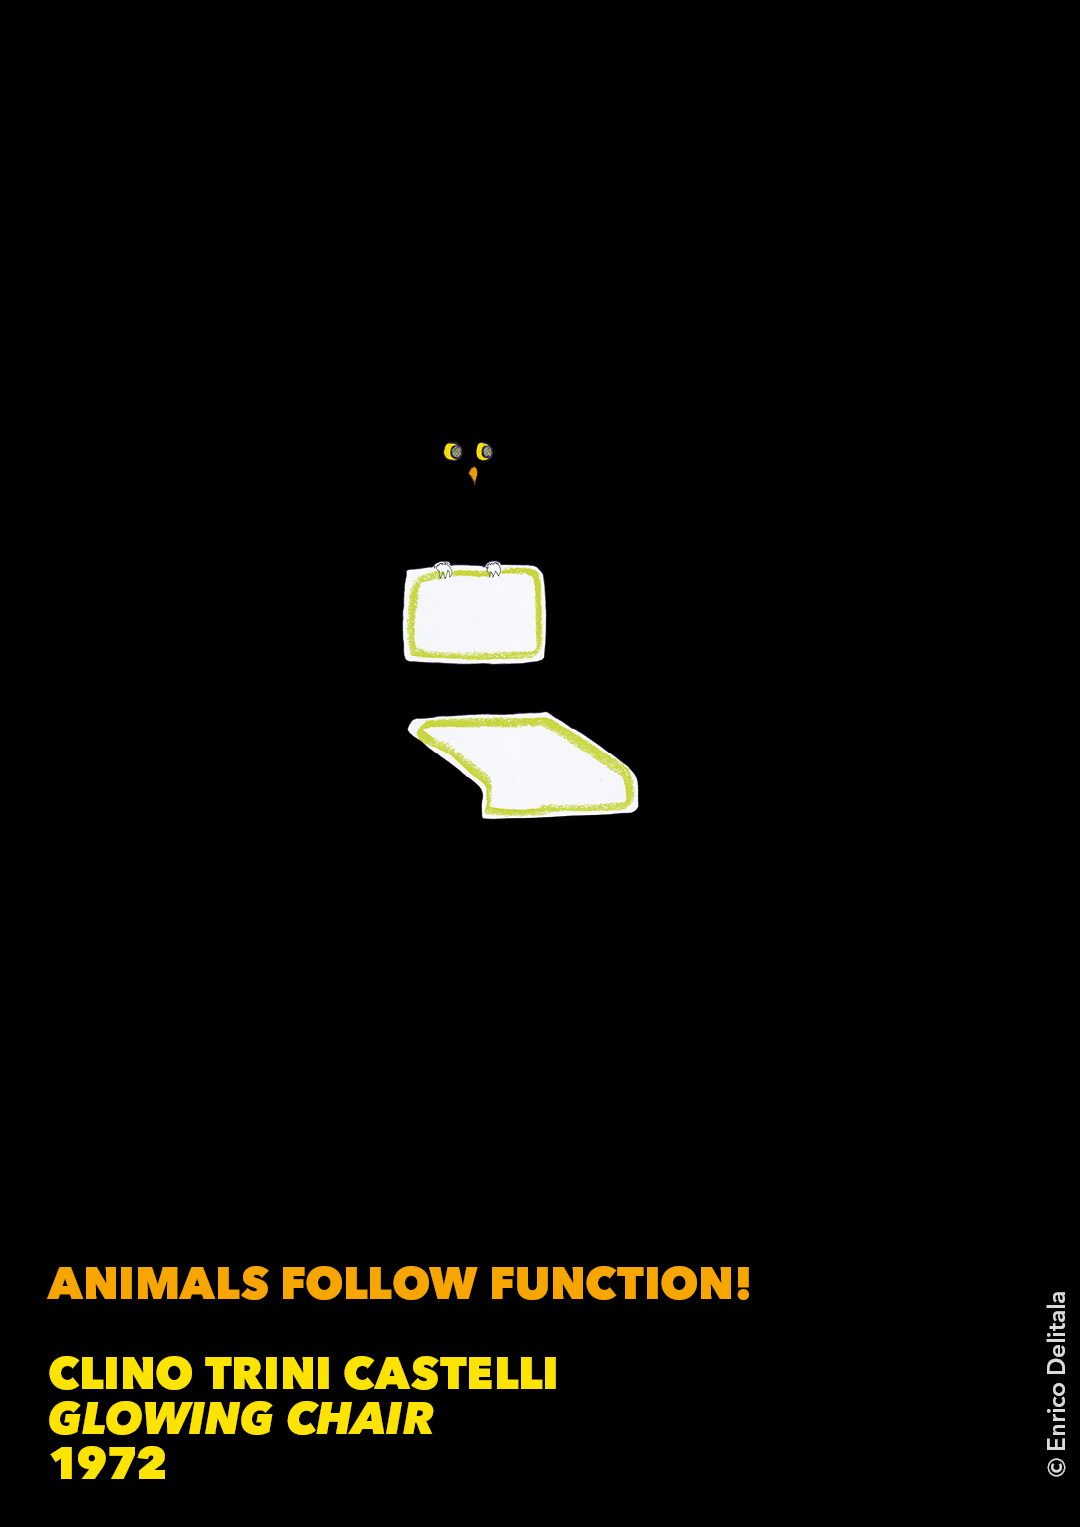 Gufo: Enrico Delitala illustrator animals follow function form follows function Clino Trini Castelli